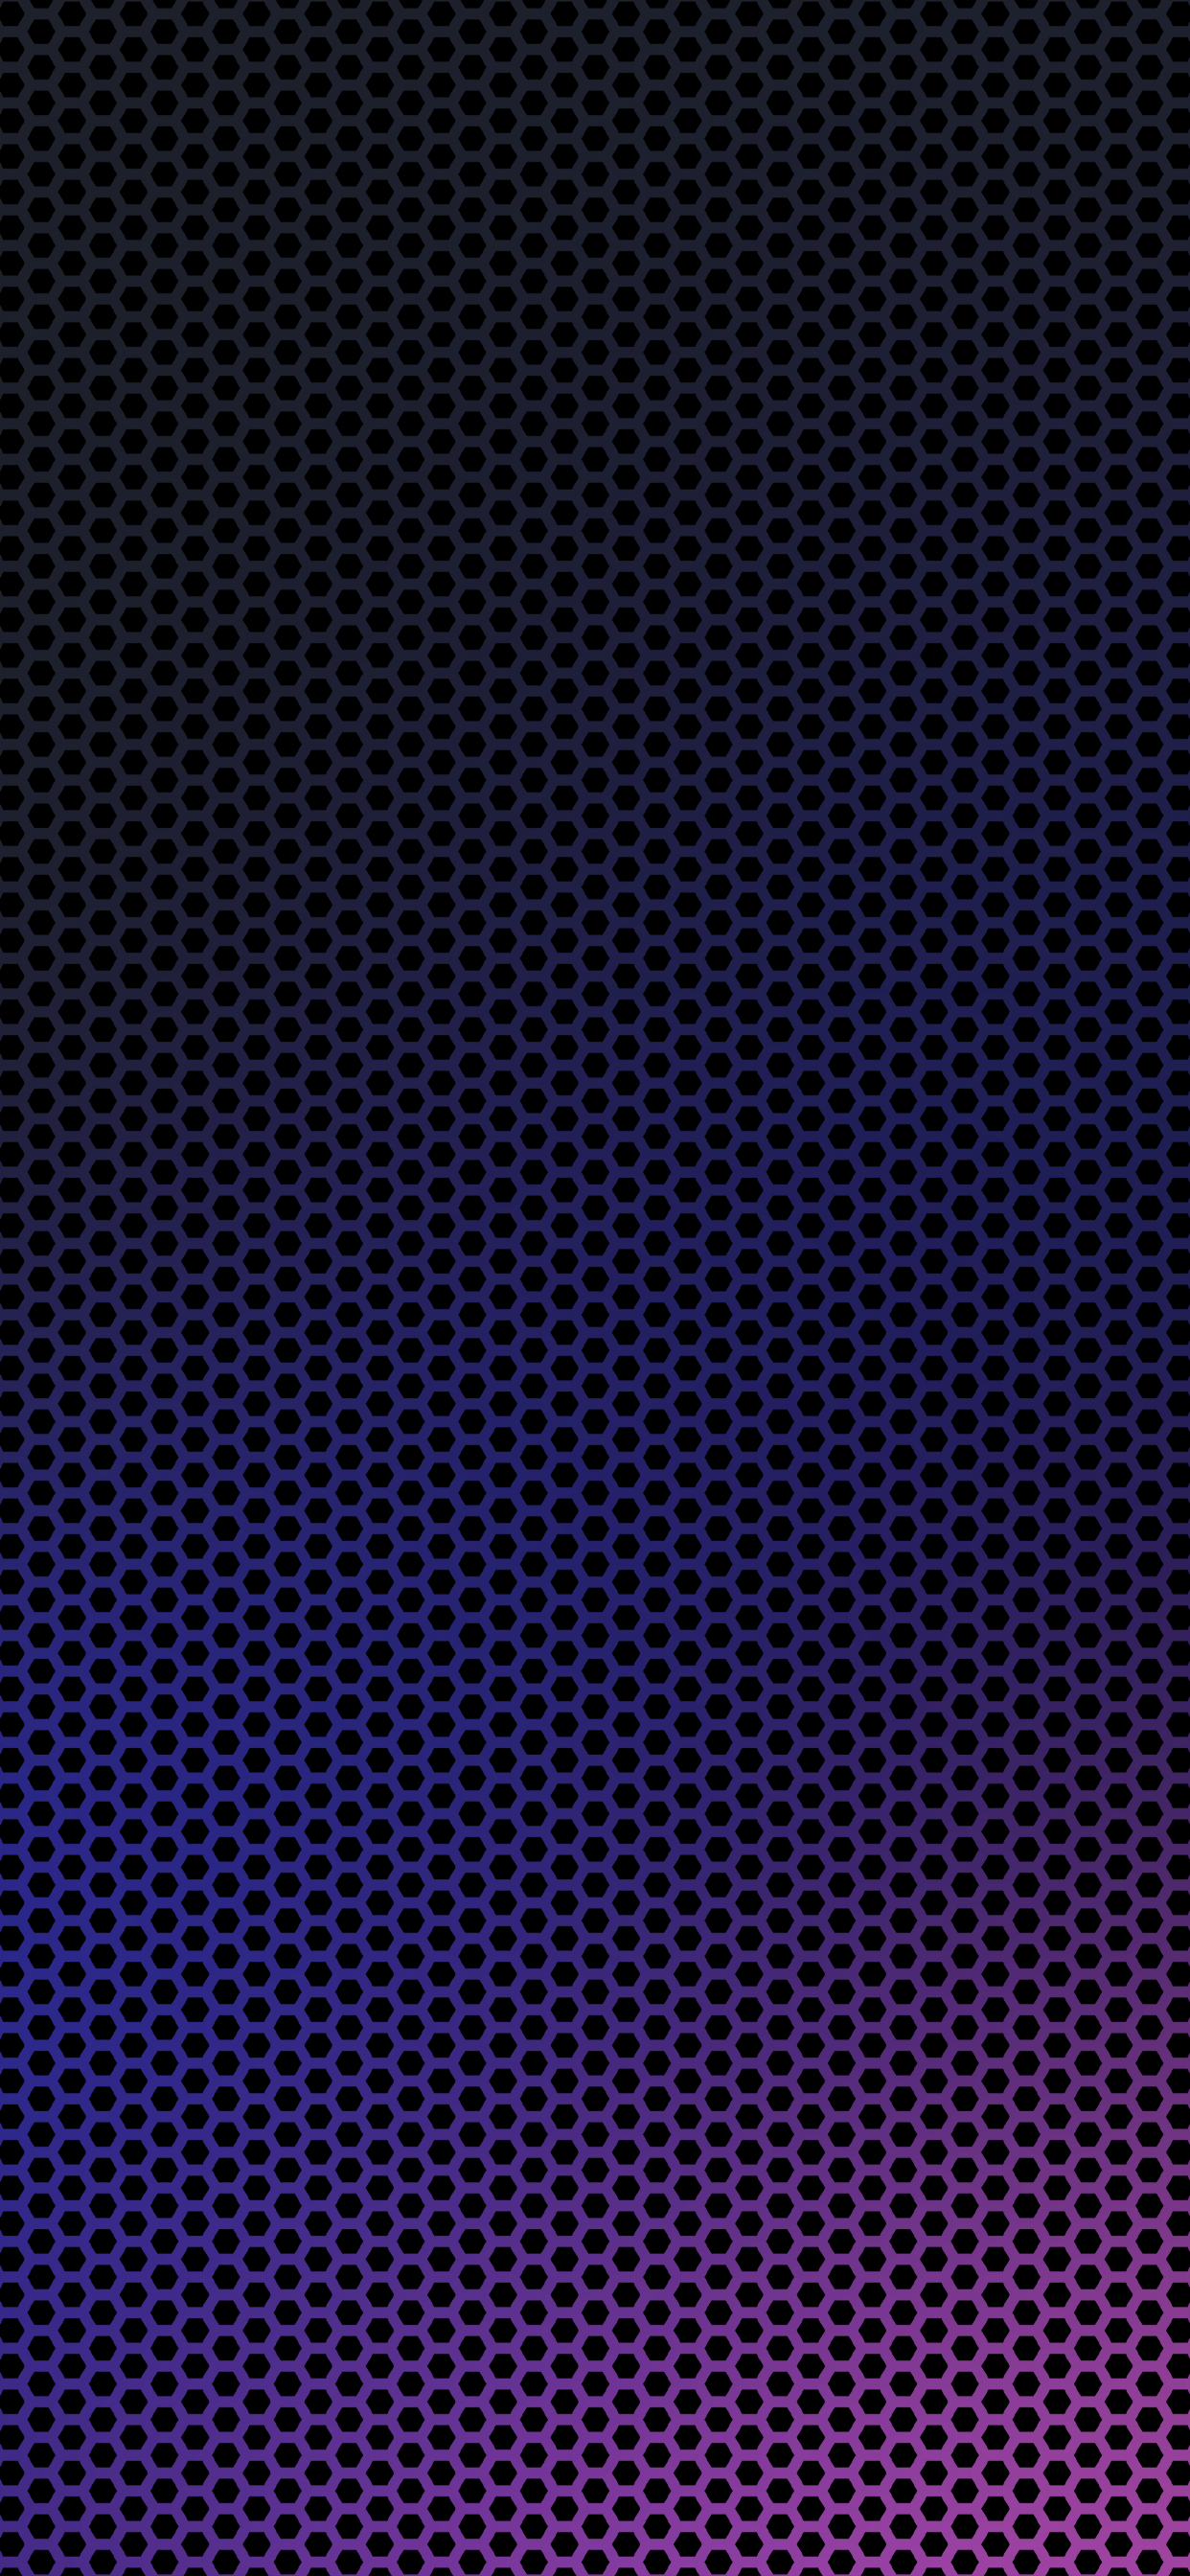 Gradient1 dark pattern iphone wallpaper arthur schrinemacher